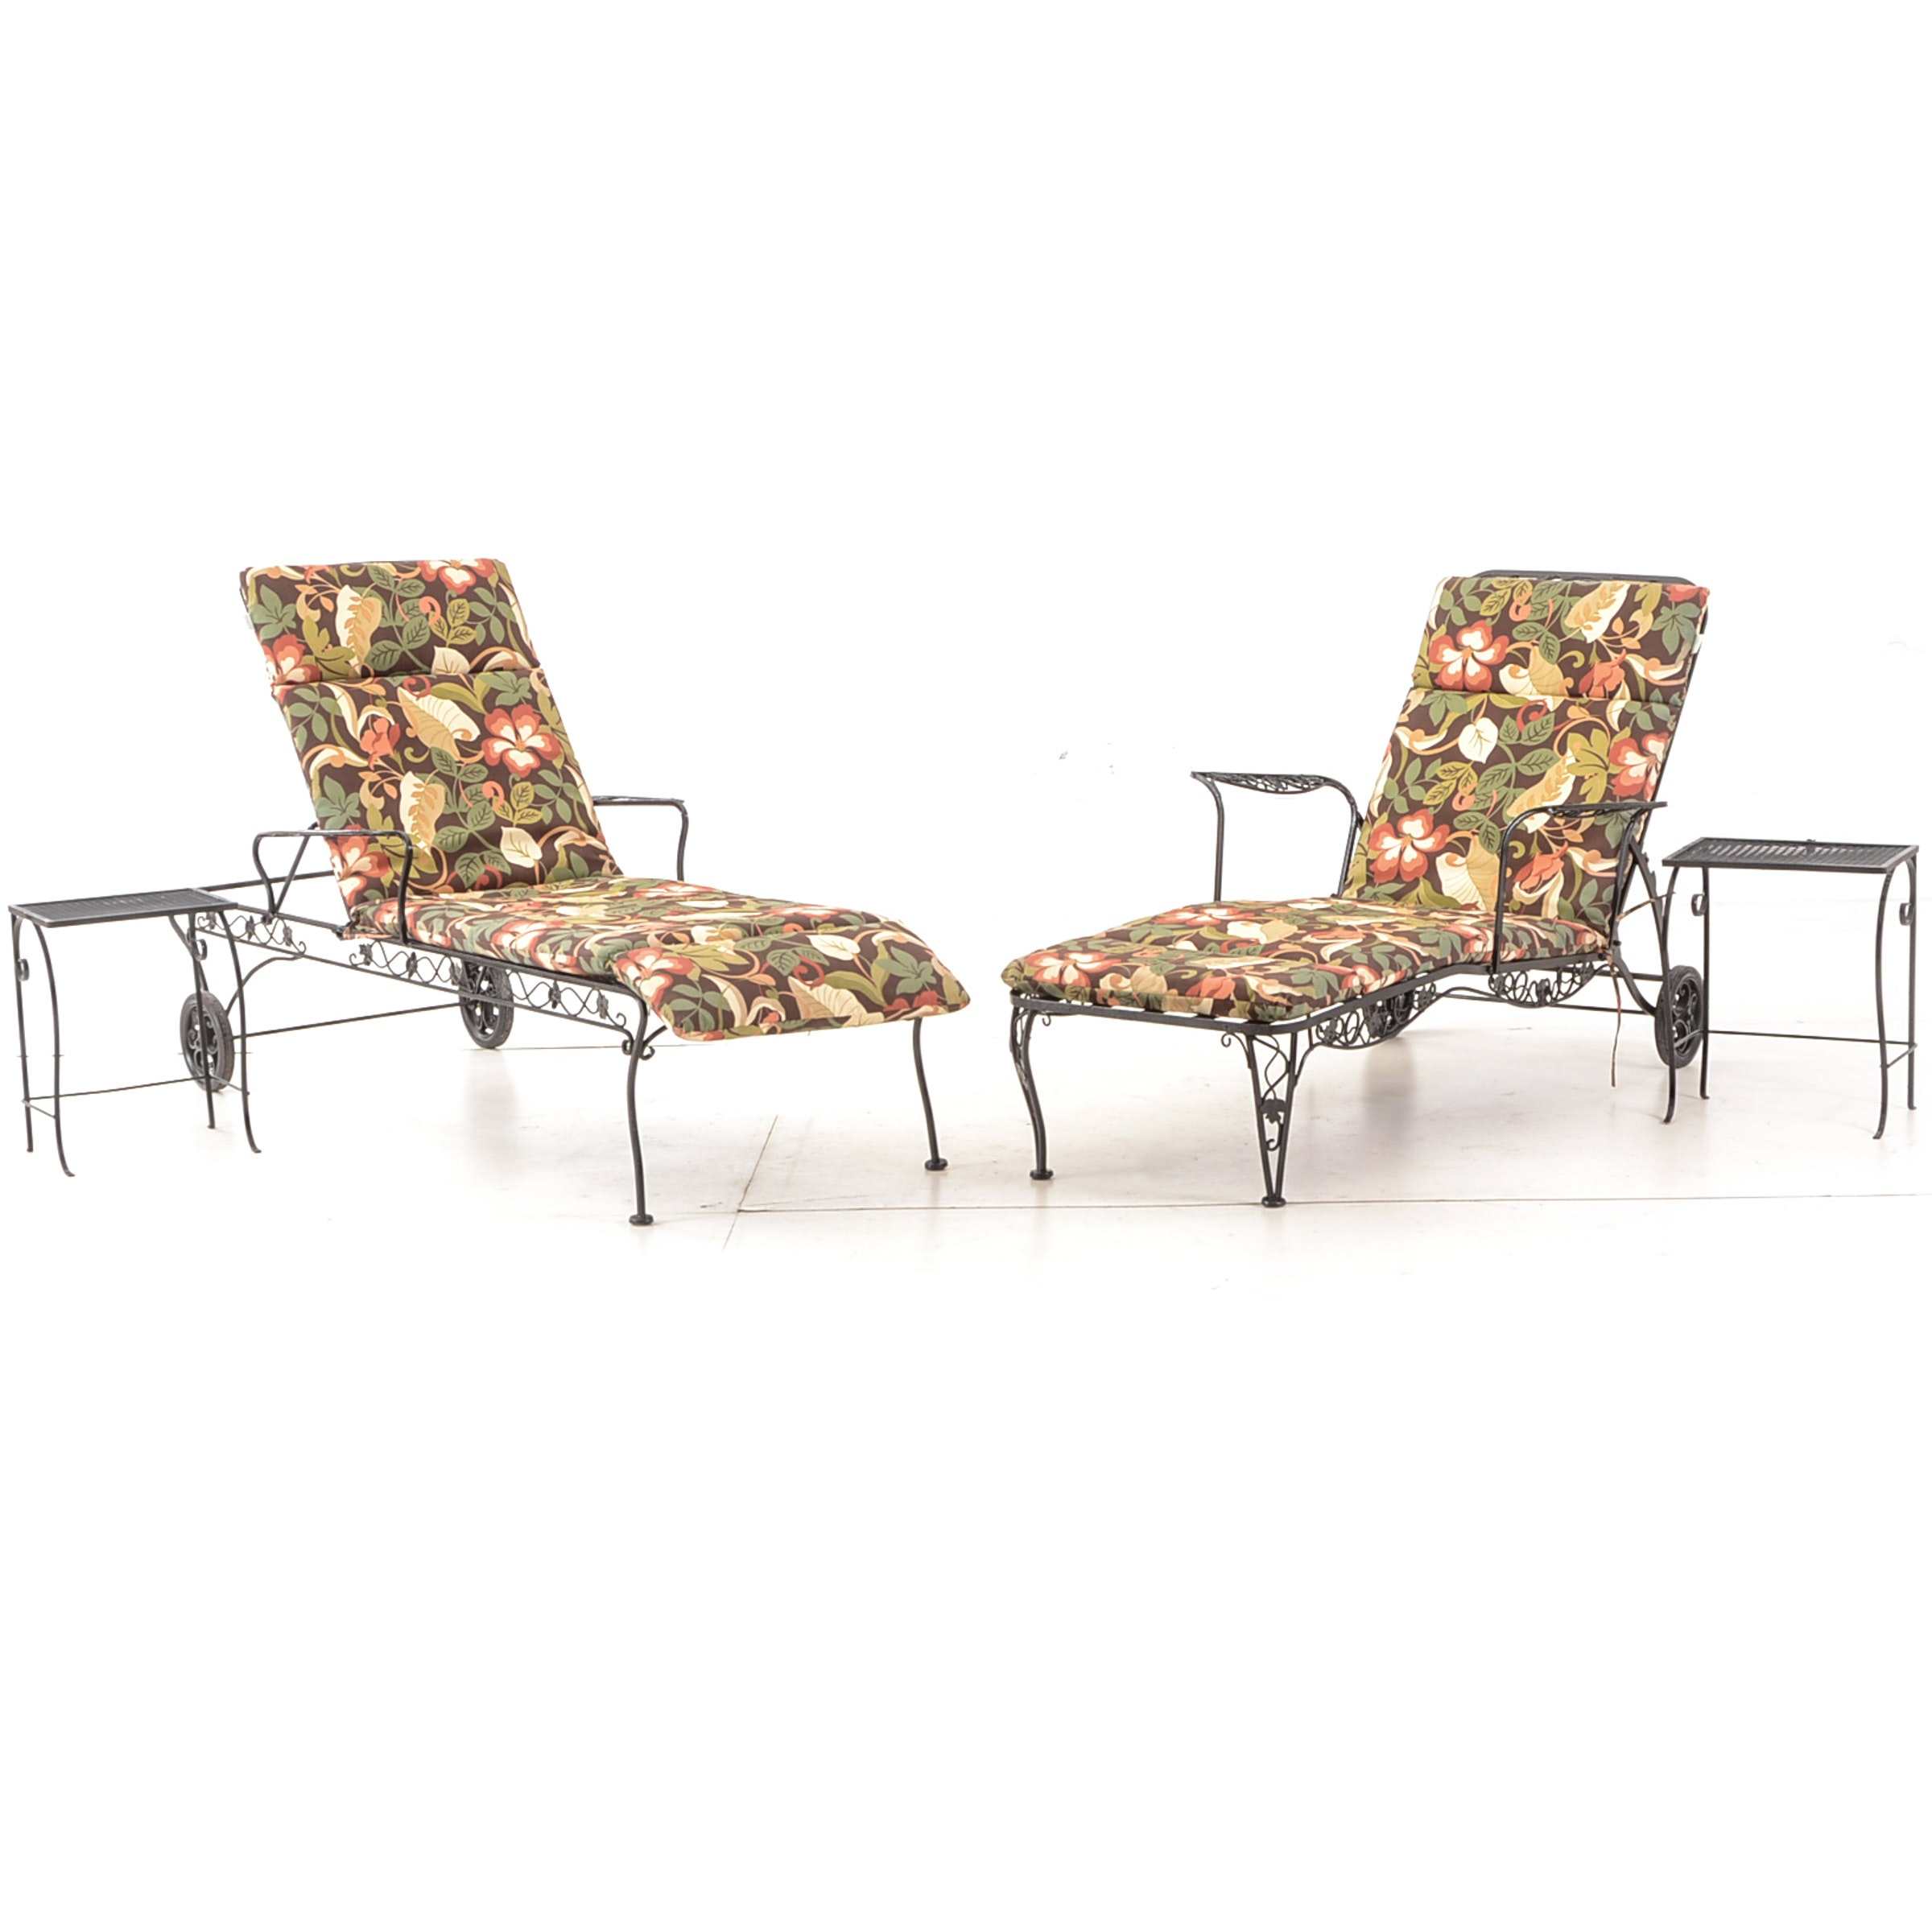 Metal Lounge Chairs and Side Tables with Solarium Outdoor Cushions